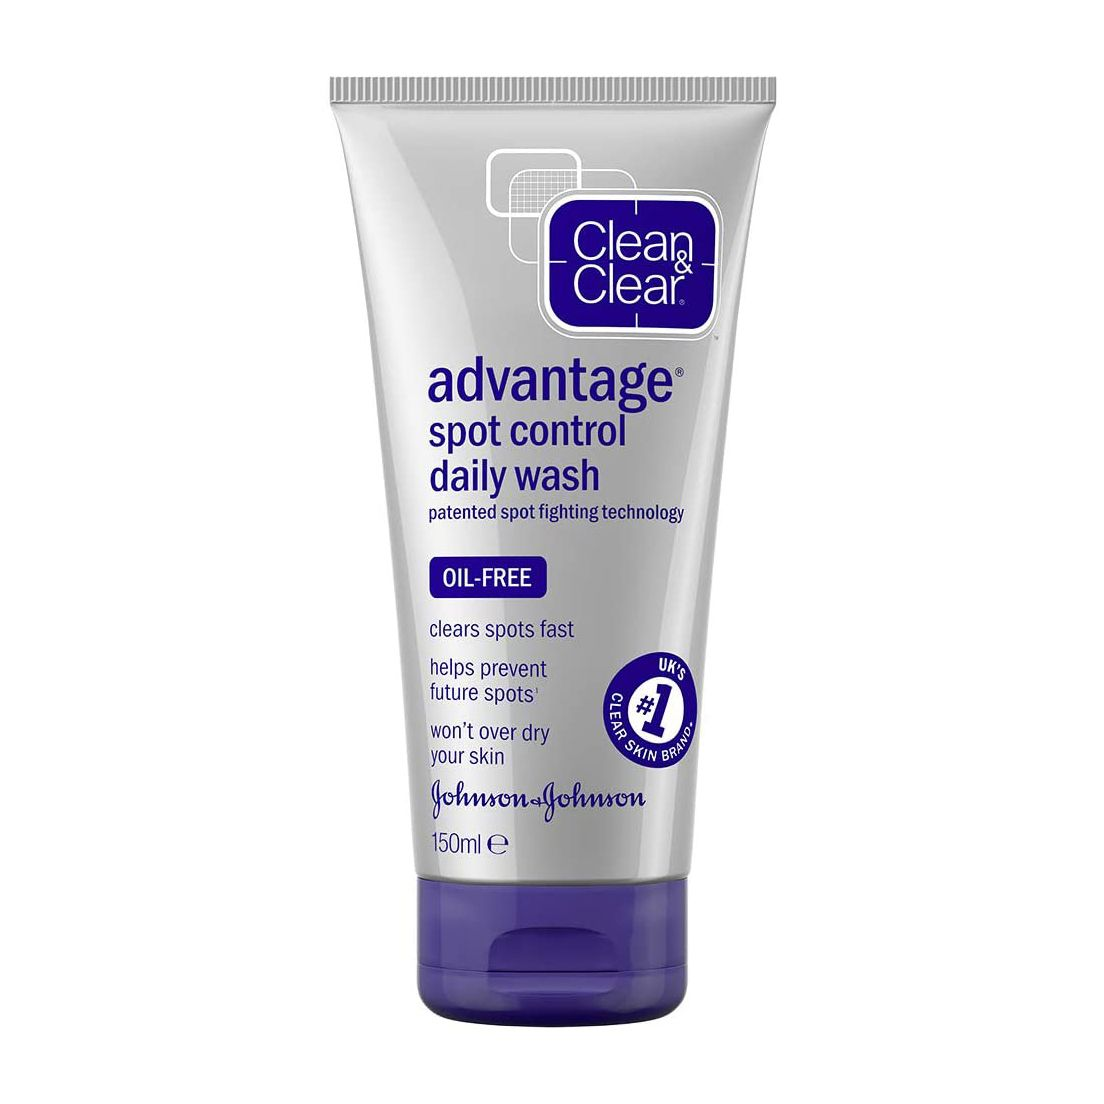 Clean & Clear Advantage Fast Action Daily Wash 150ml